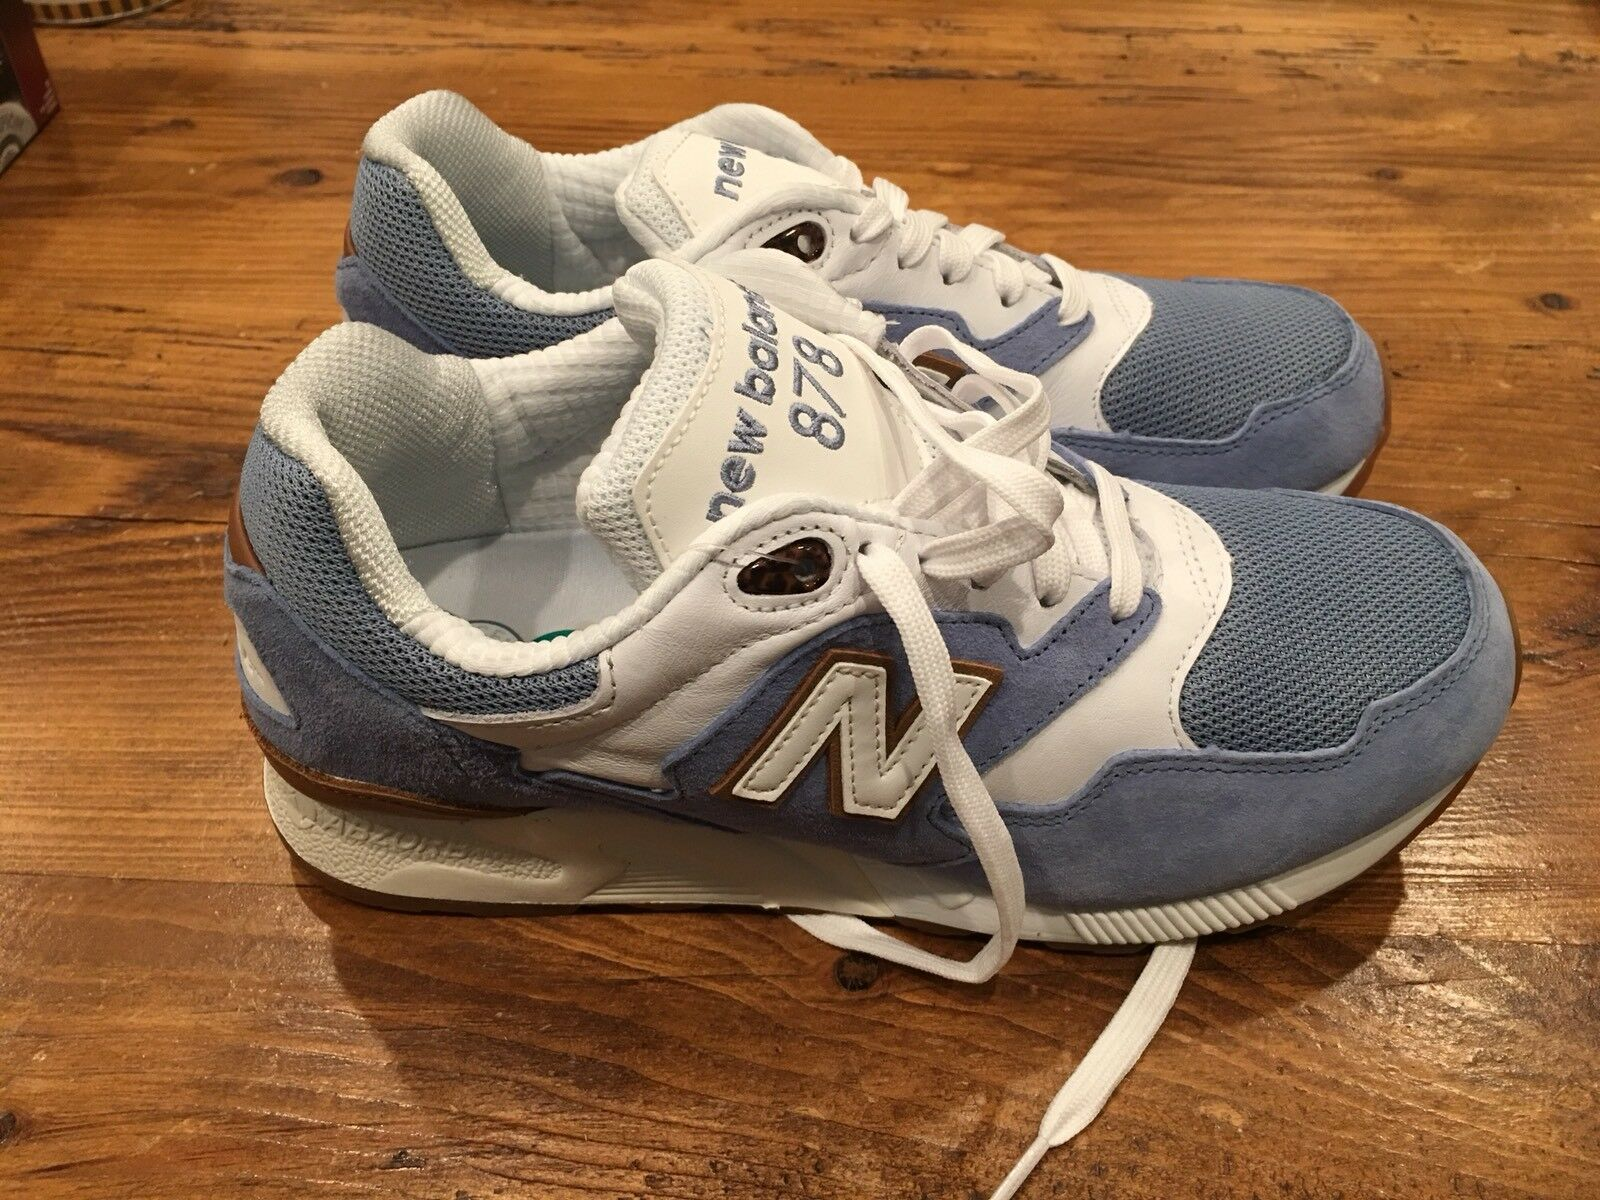 New Balance Men's 878 Abzorb Shoes Sneakers - Size 8